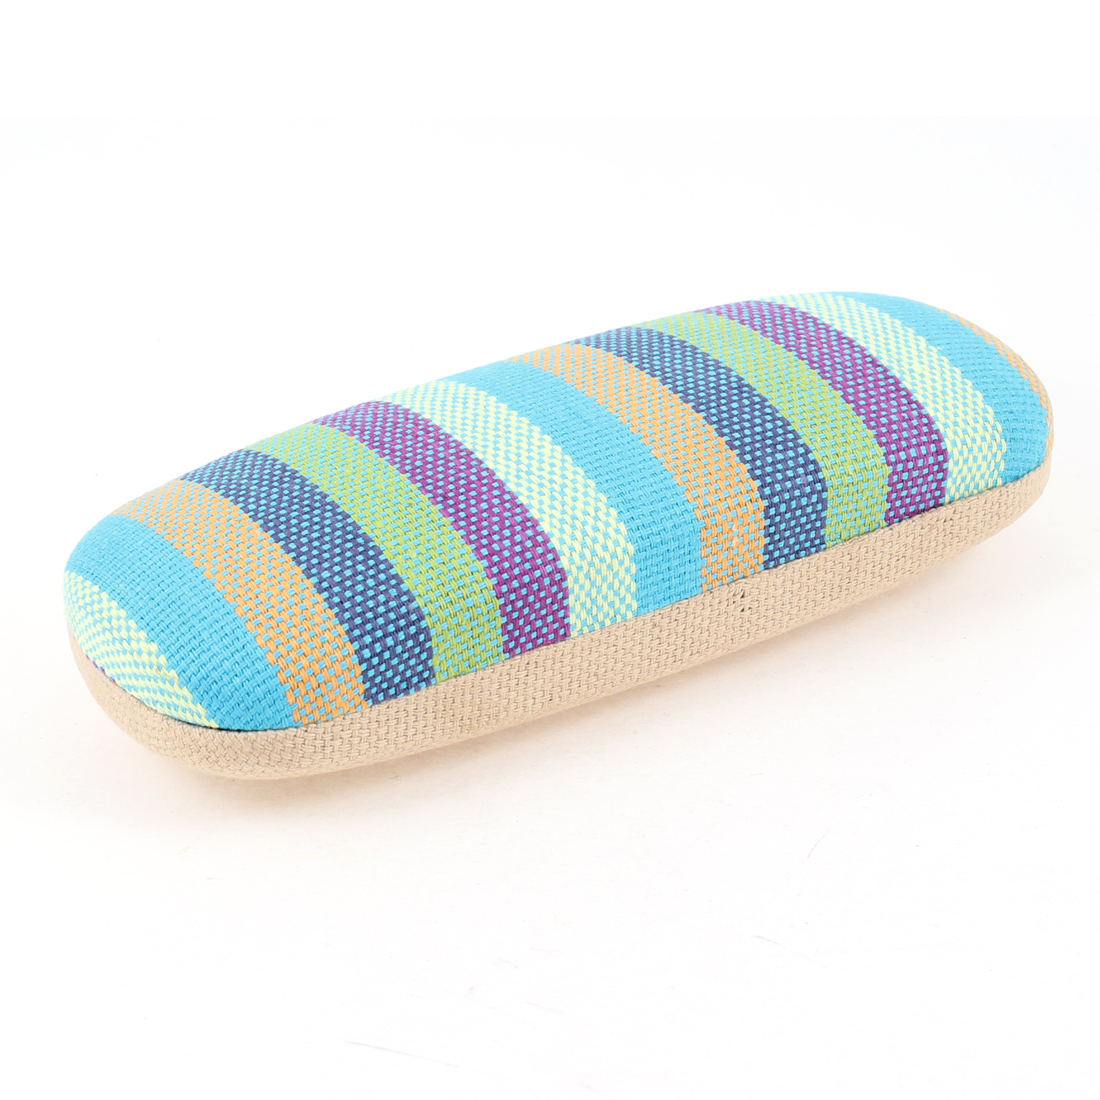 Purple Blue Orange Textured Reading Glasses Eyeglasses Case Box